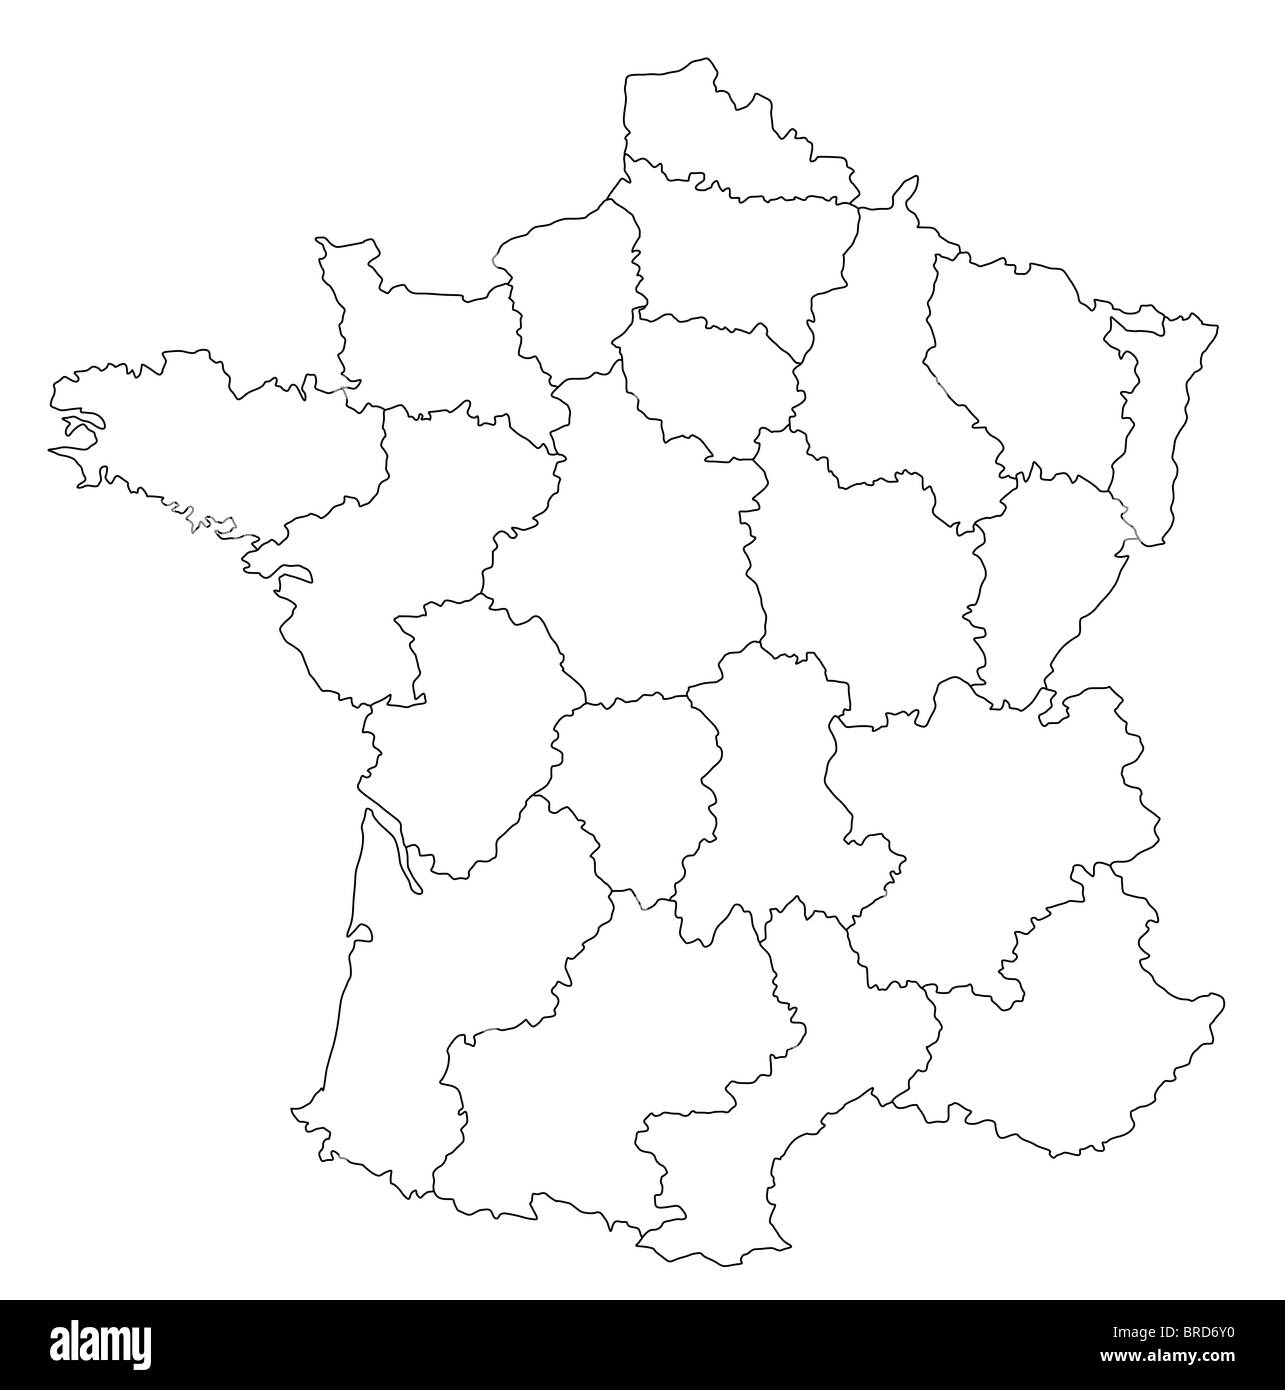 Map Of Provinces In France.An Outlined Map Of France Showing The Different Provinces All Stock